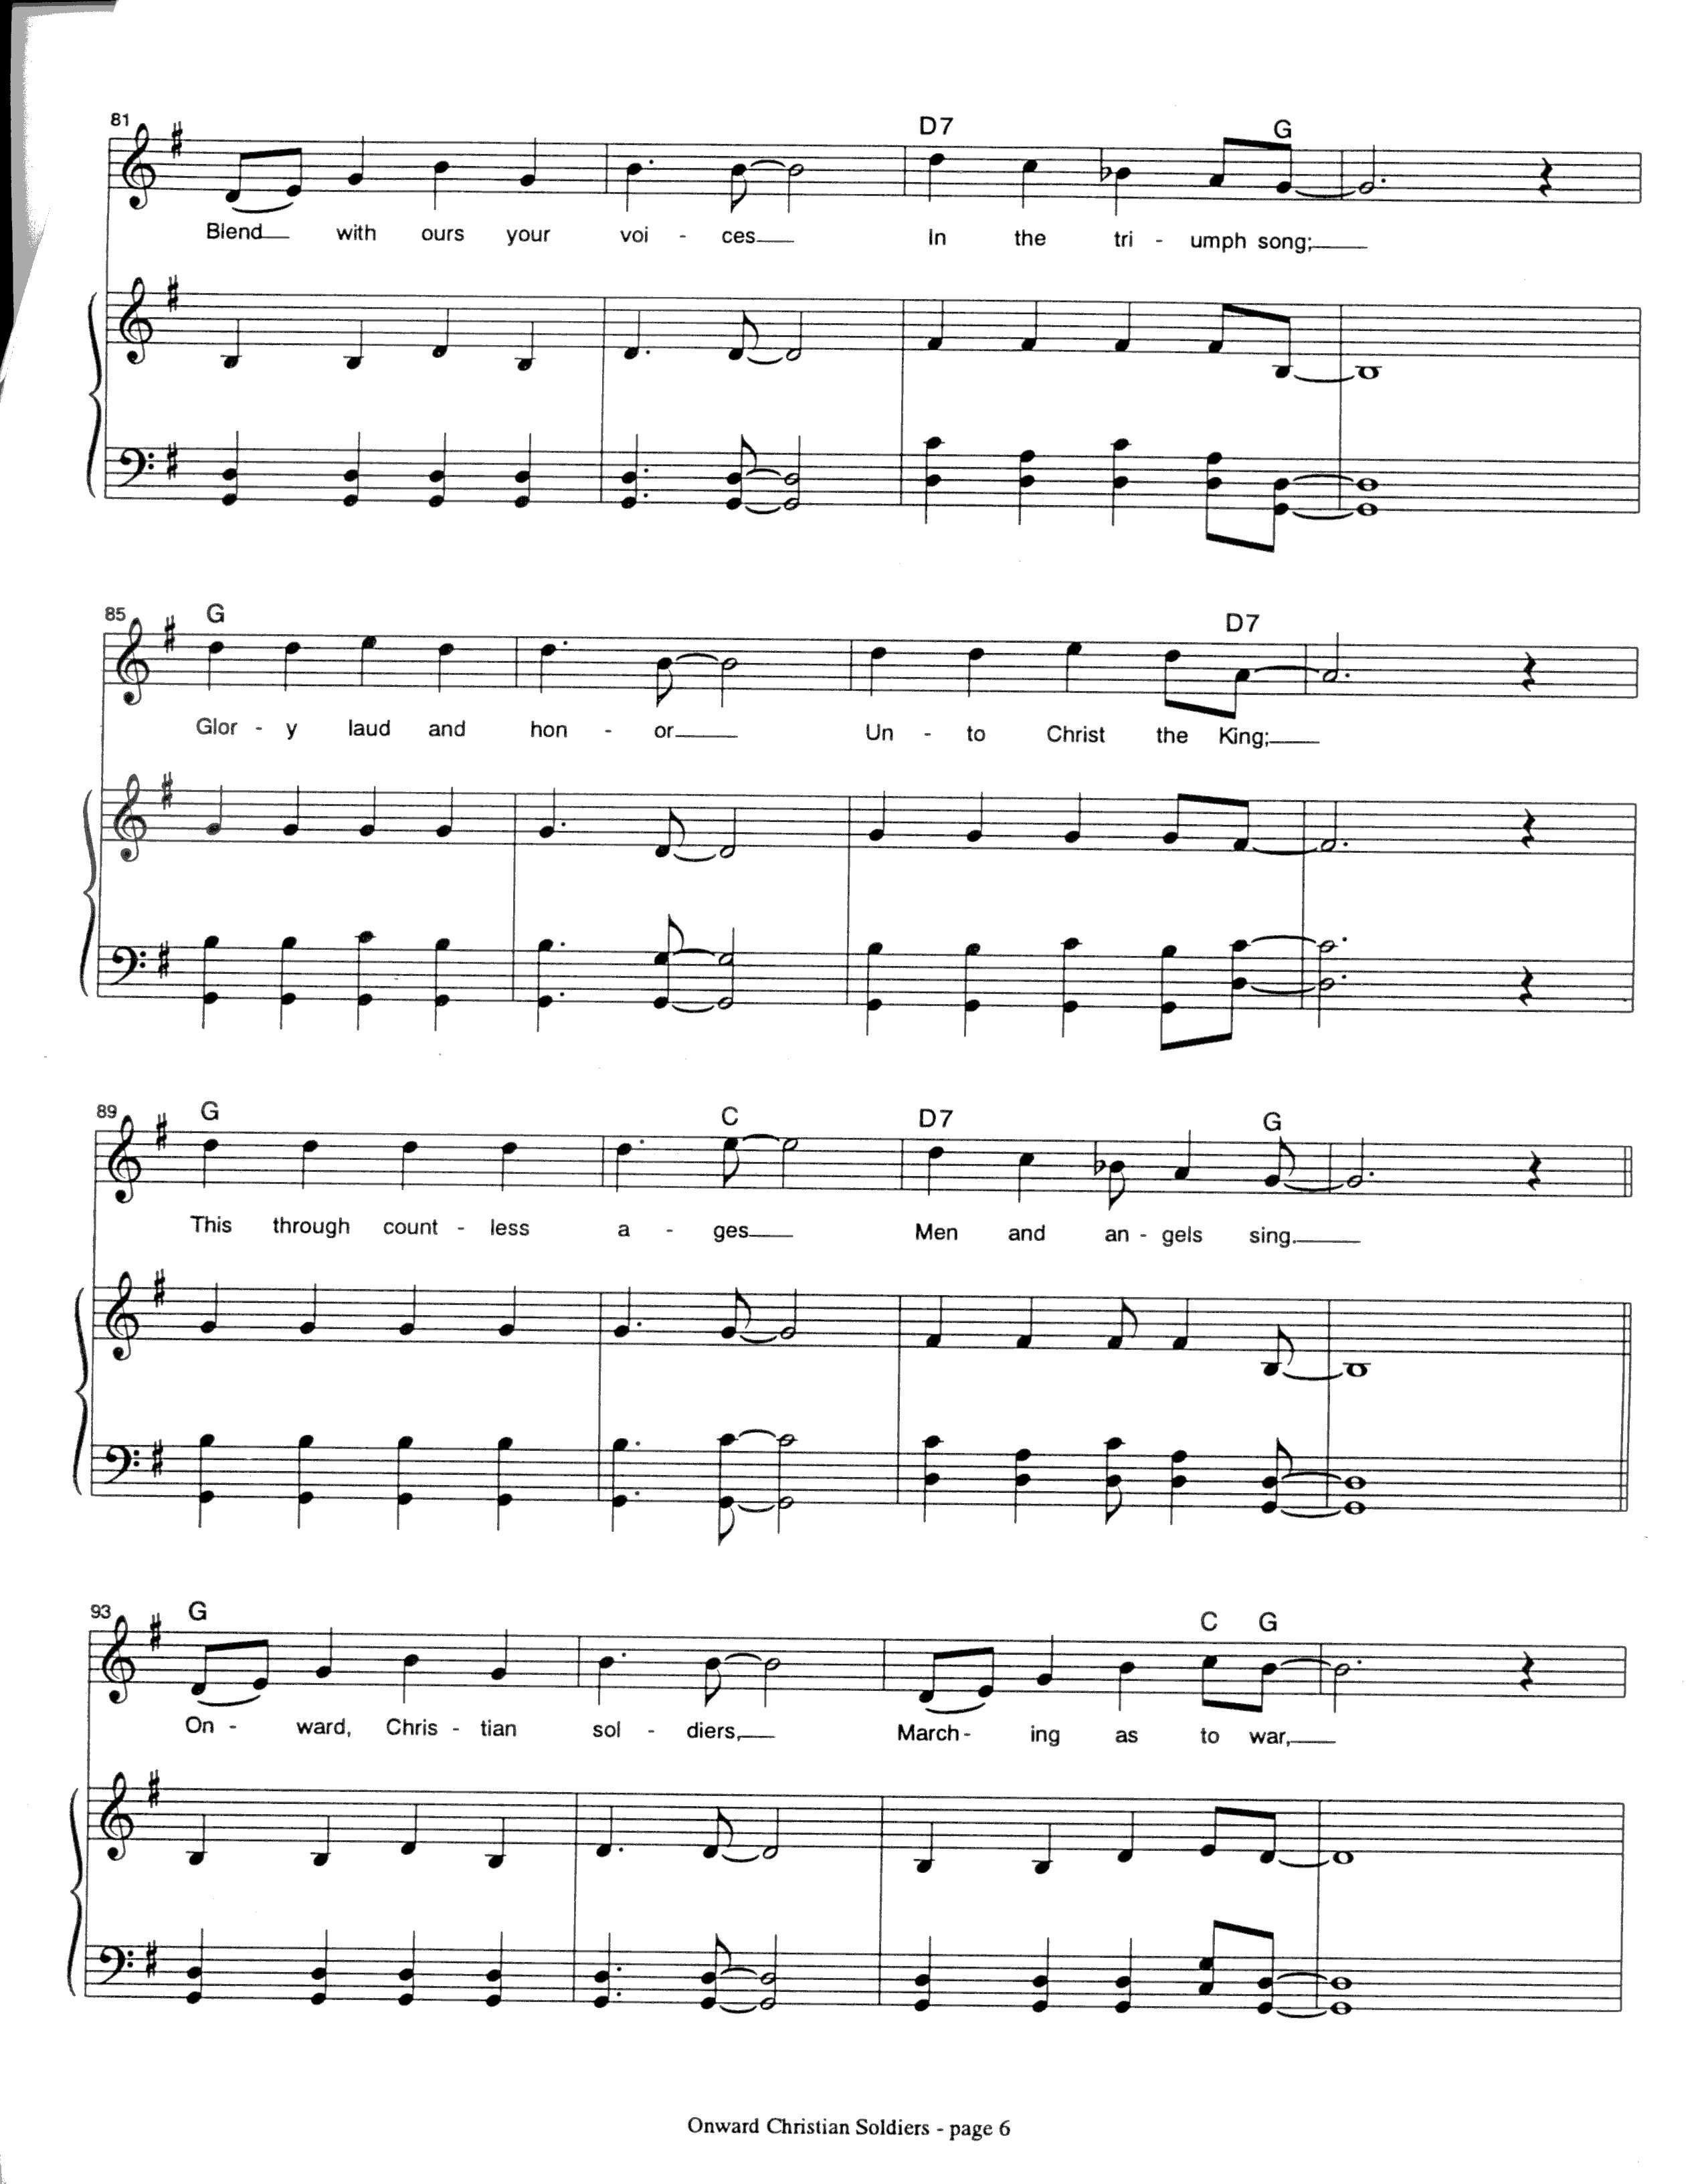 Index of sheetmusic hymns